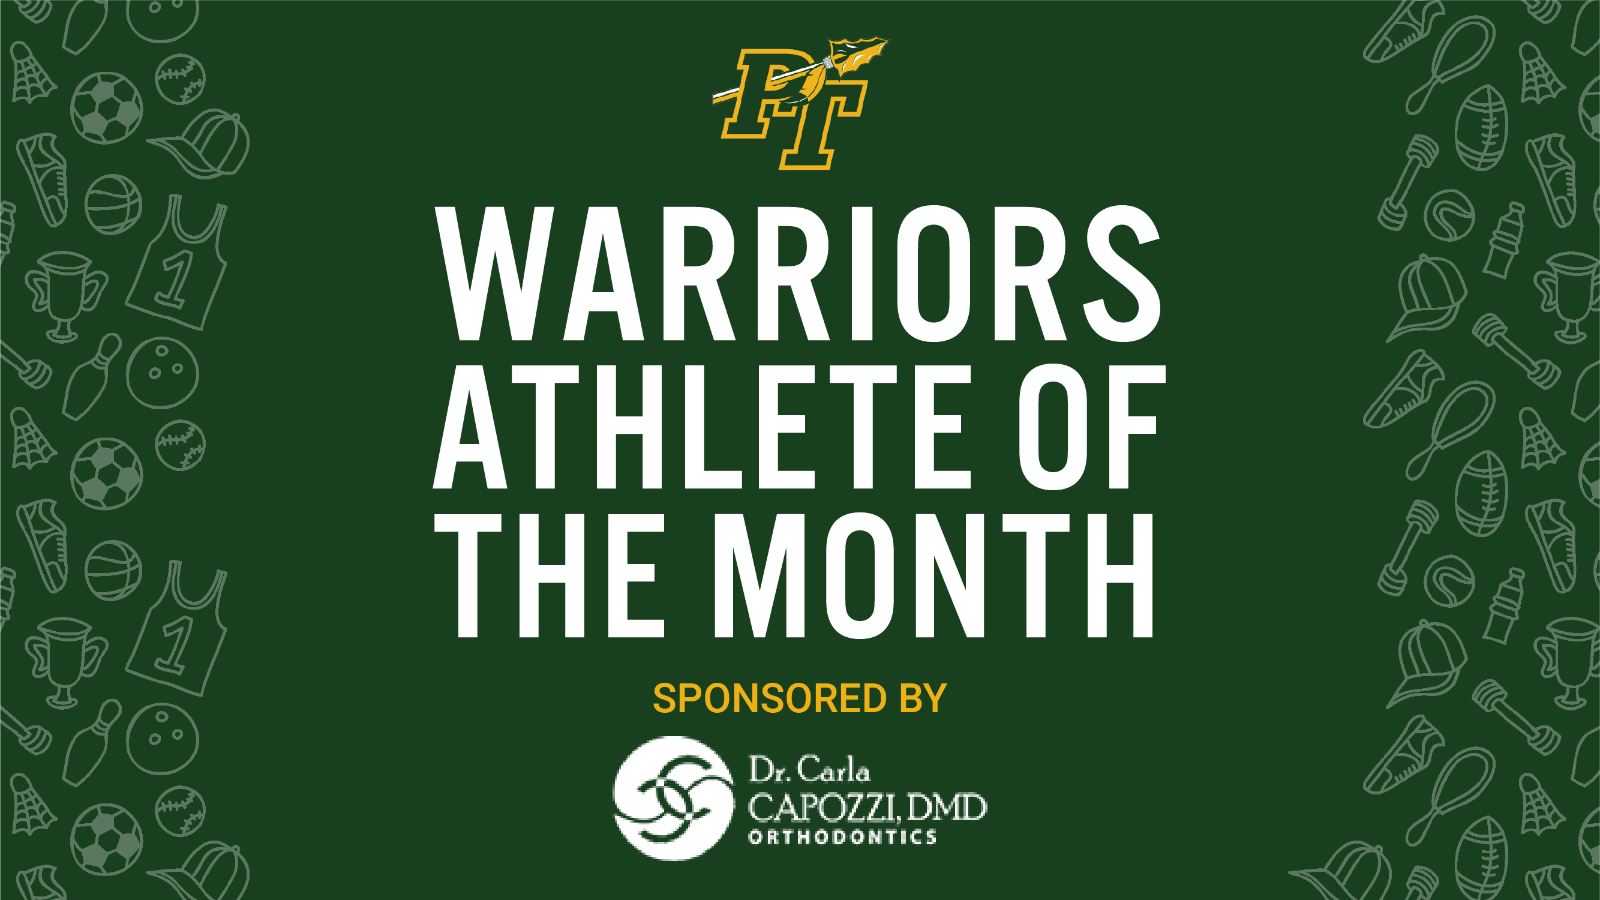 Congratulations to our Athlete of the Month for March!- Sponsored by Dr. Carla Capozzi